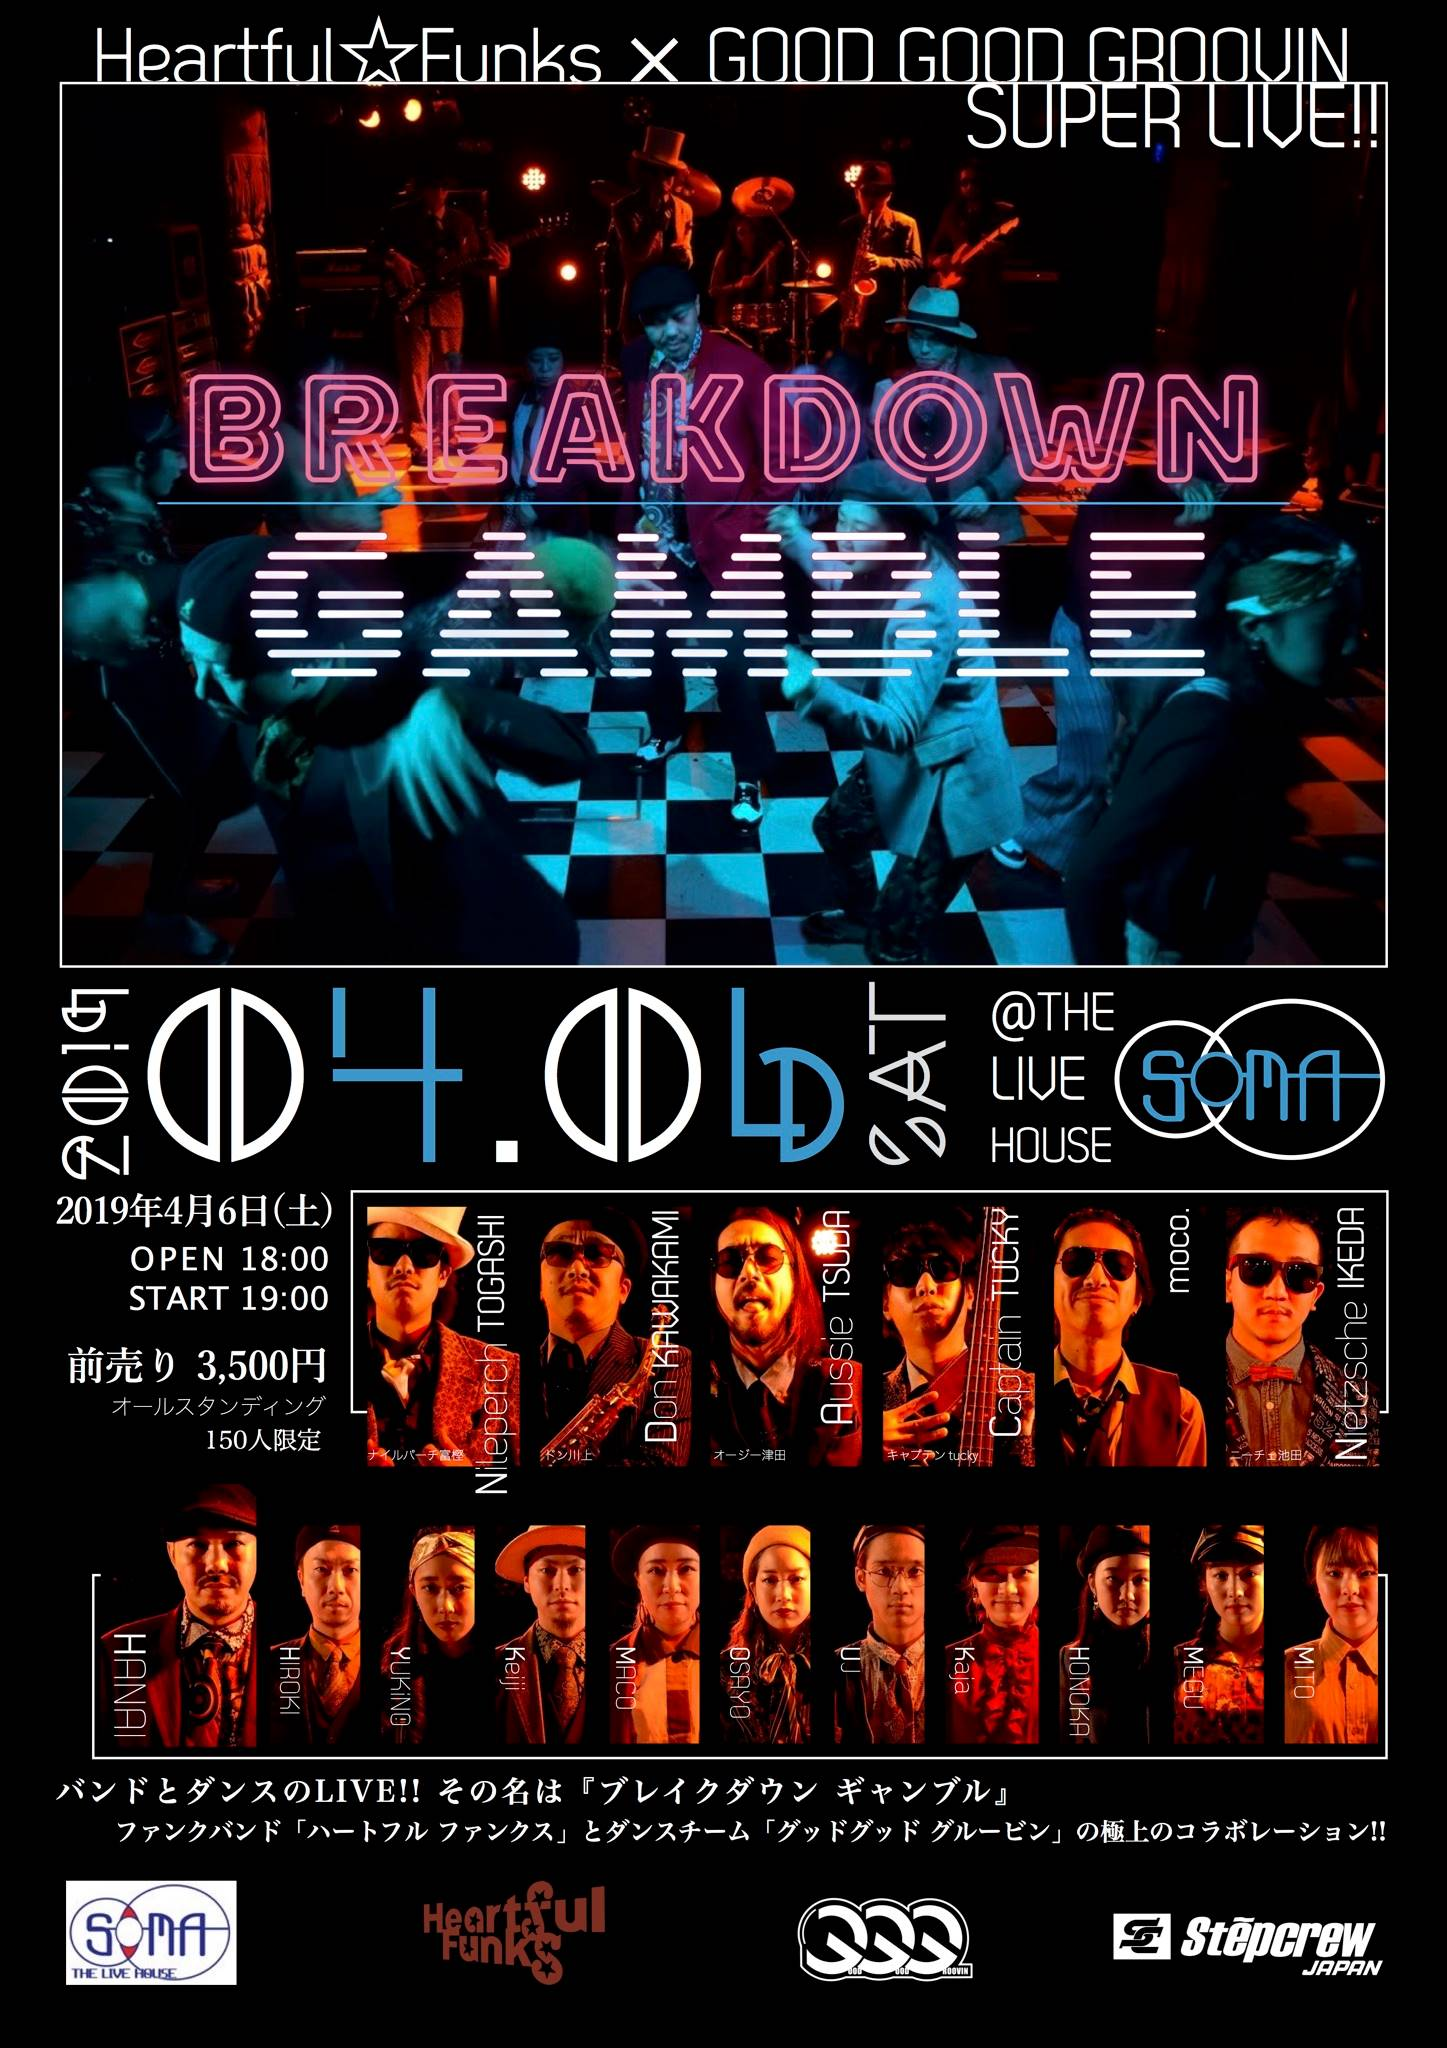 [Heartful☆Funks]×[GOOD GOOD GROOVIN]  SUPER LIVE SHOWCASE!! 「BREAKDOWN GAMBLE」 ブレイクダウン ギャンブル